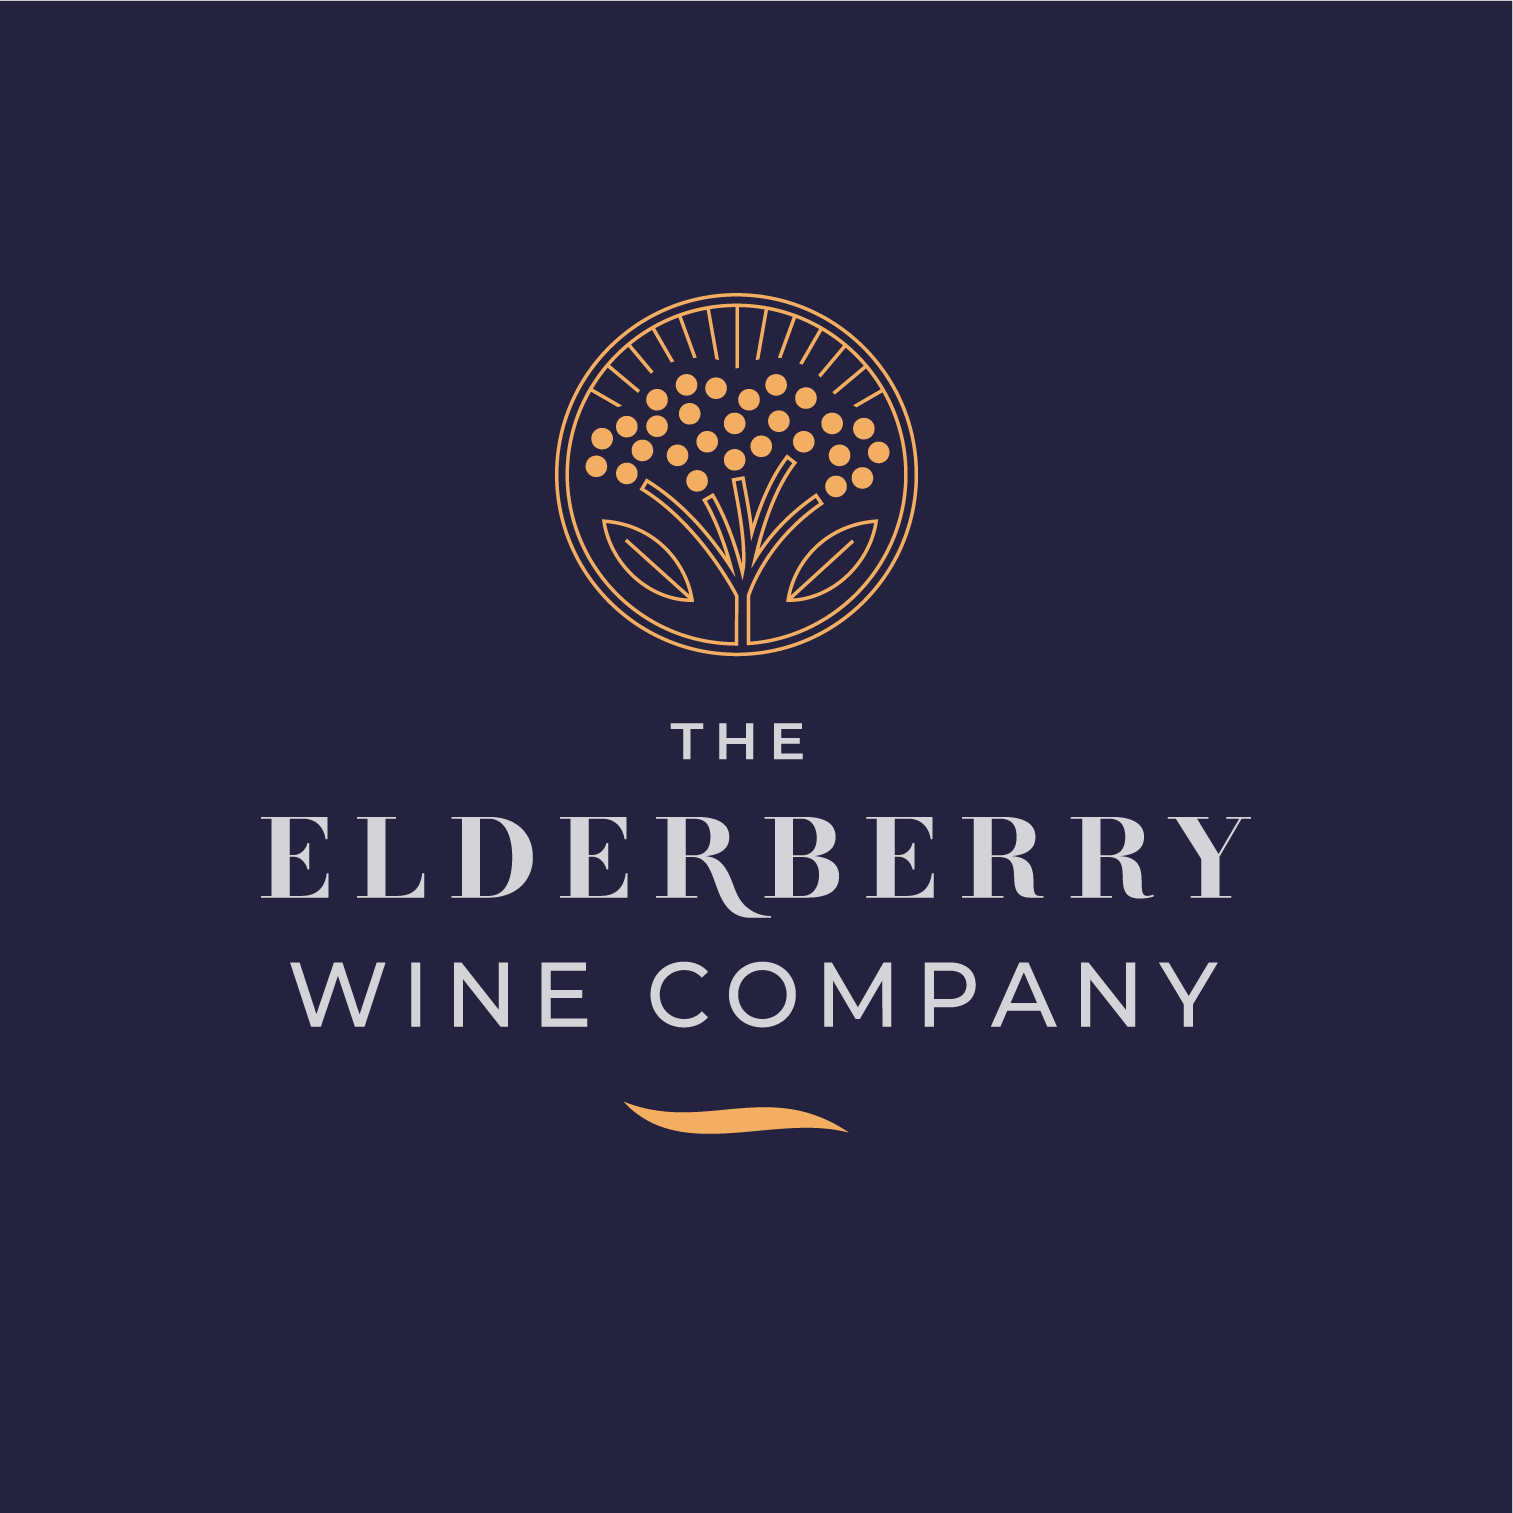 The signature mark featuring an elderberry seal